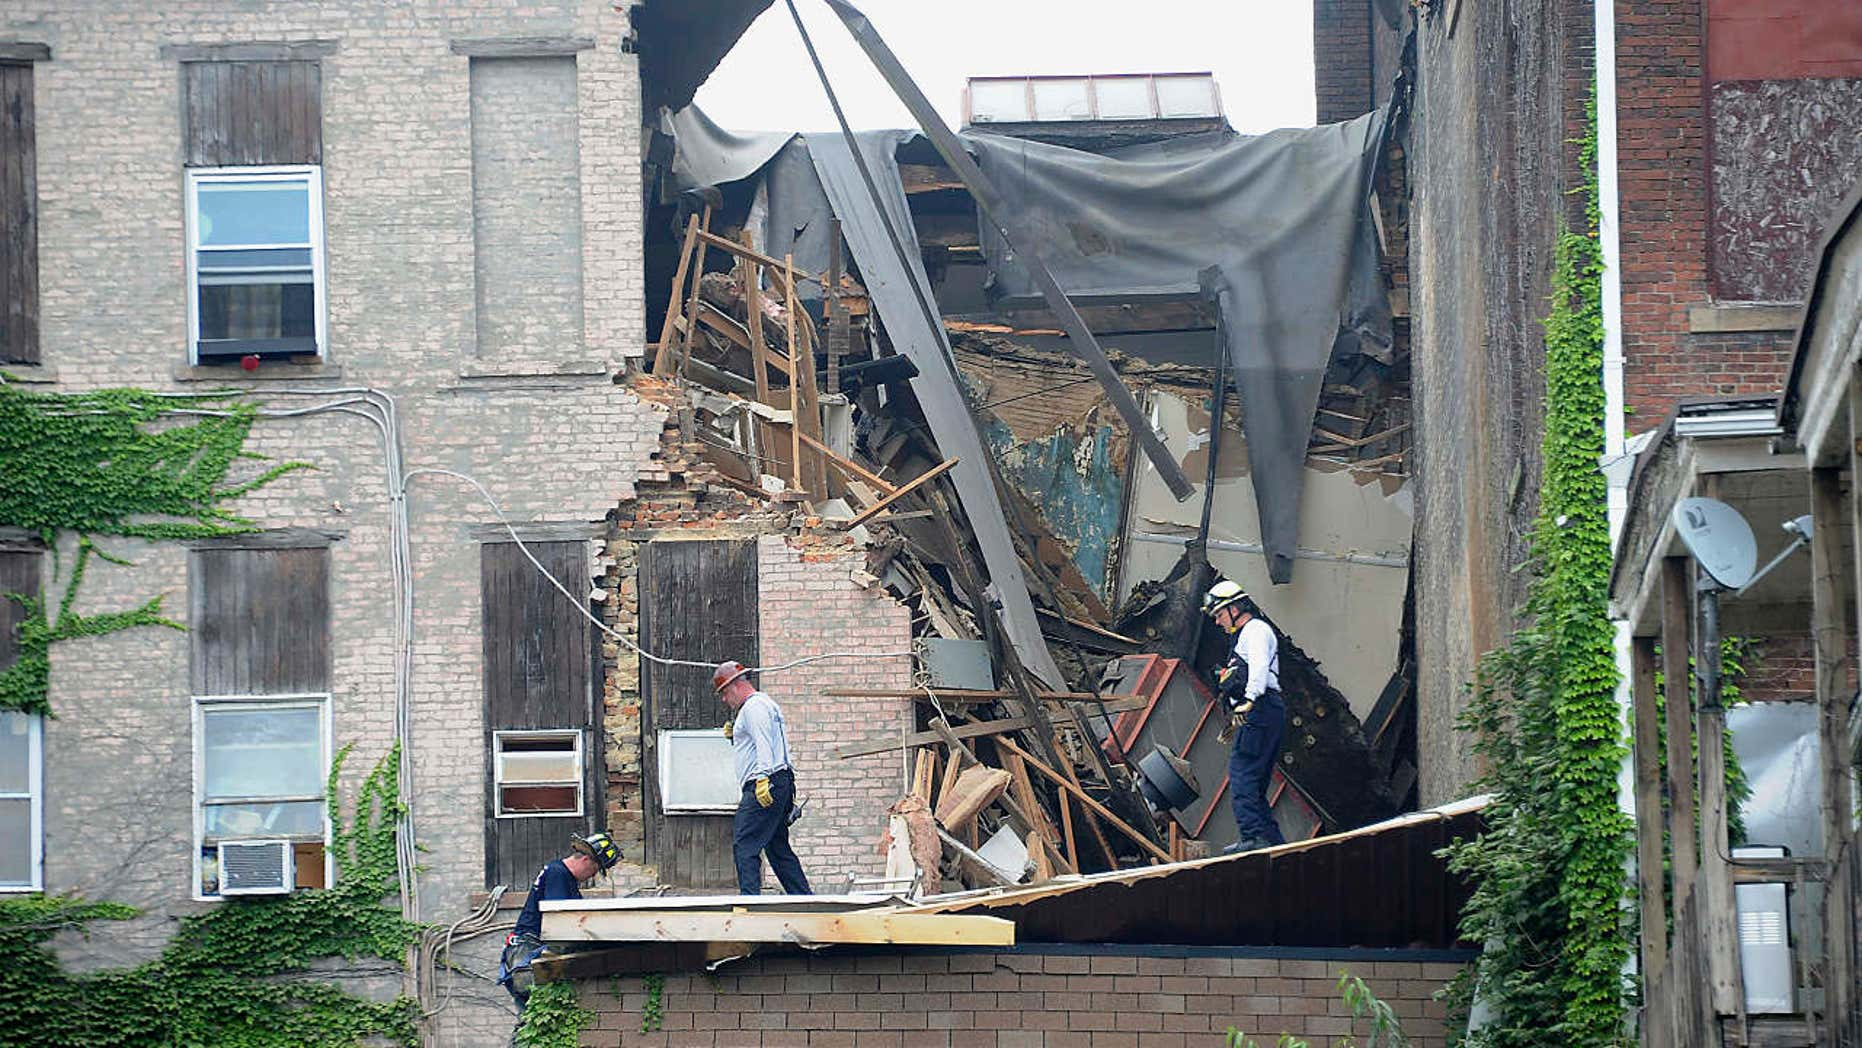 Emergency workers examine an apartment building that collapsed in Washington, Pa., Wednesday July 12, 2017.